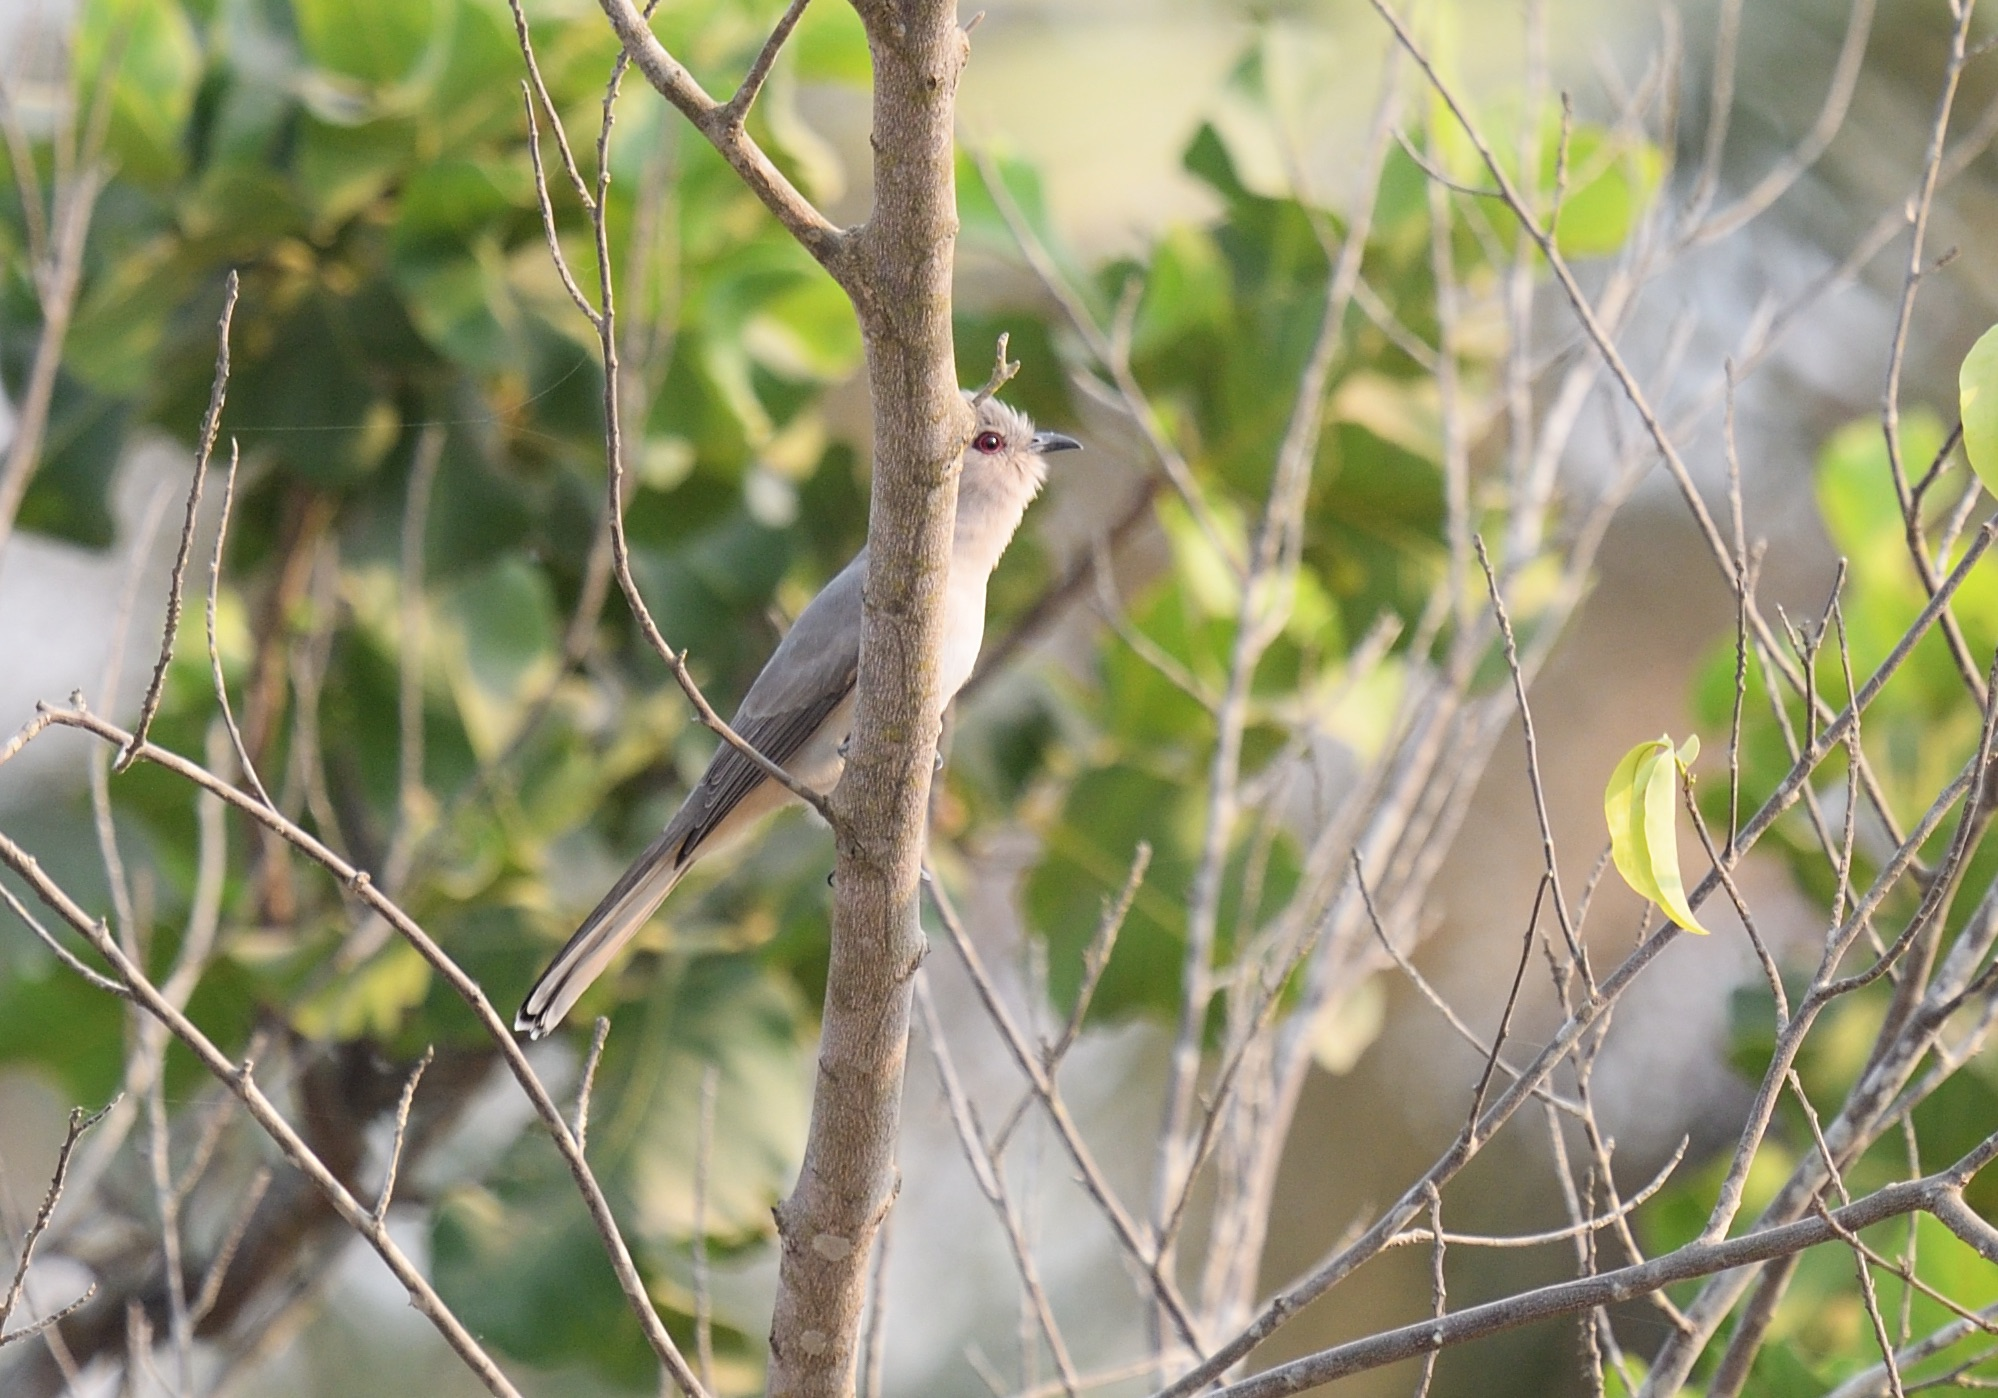 Ash-coloured Cuckoo